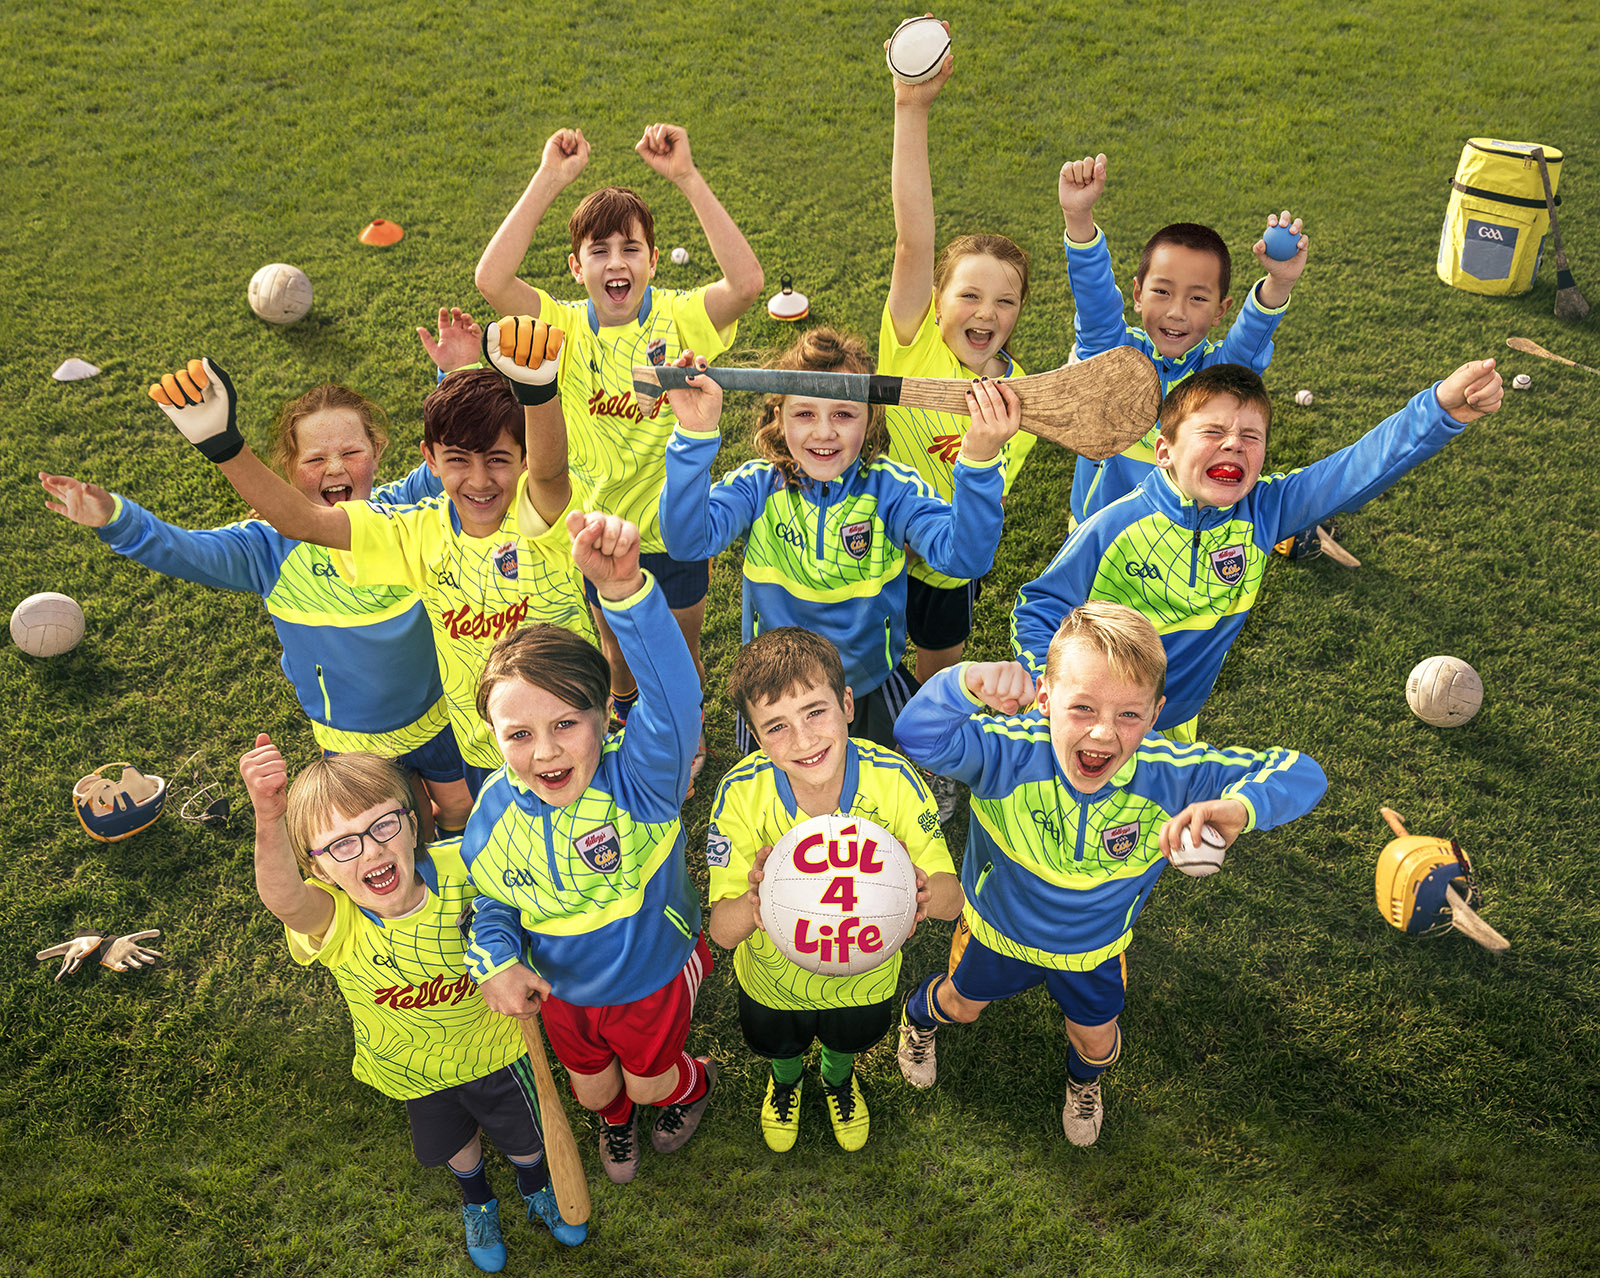 KELLOGG'S RESEARCH STUDY ON CHILDREN'S ACTIVITY LEVELS AND SPORT   - Newstalk.com